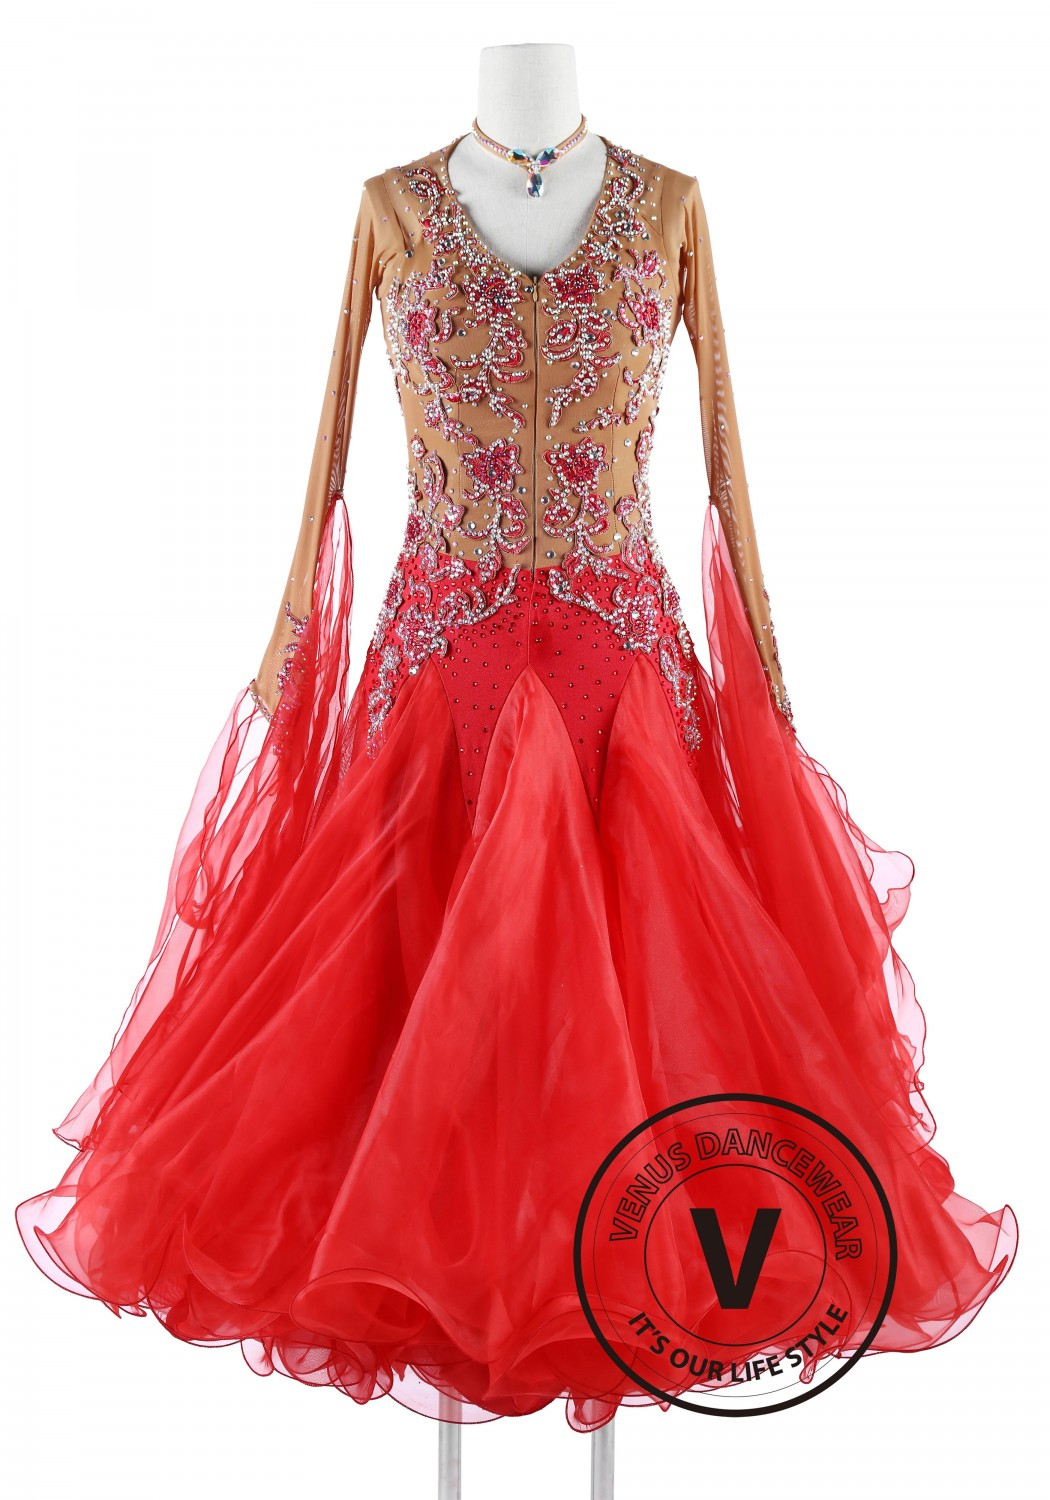 Scarlett Red Standard Foxtrot Waltz Quickstep Dress